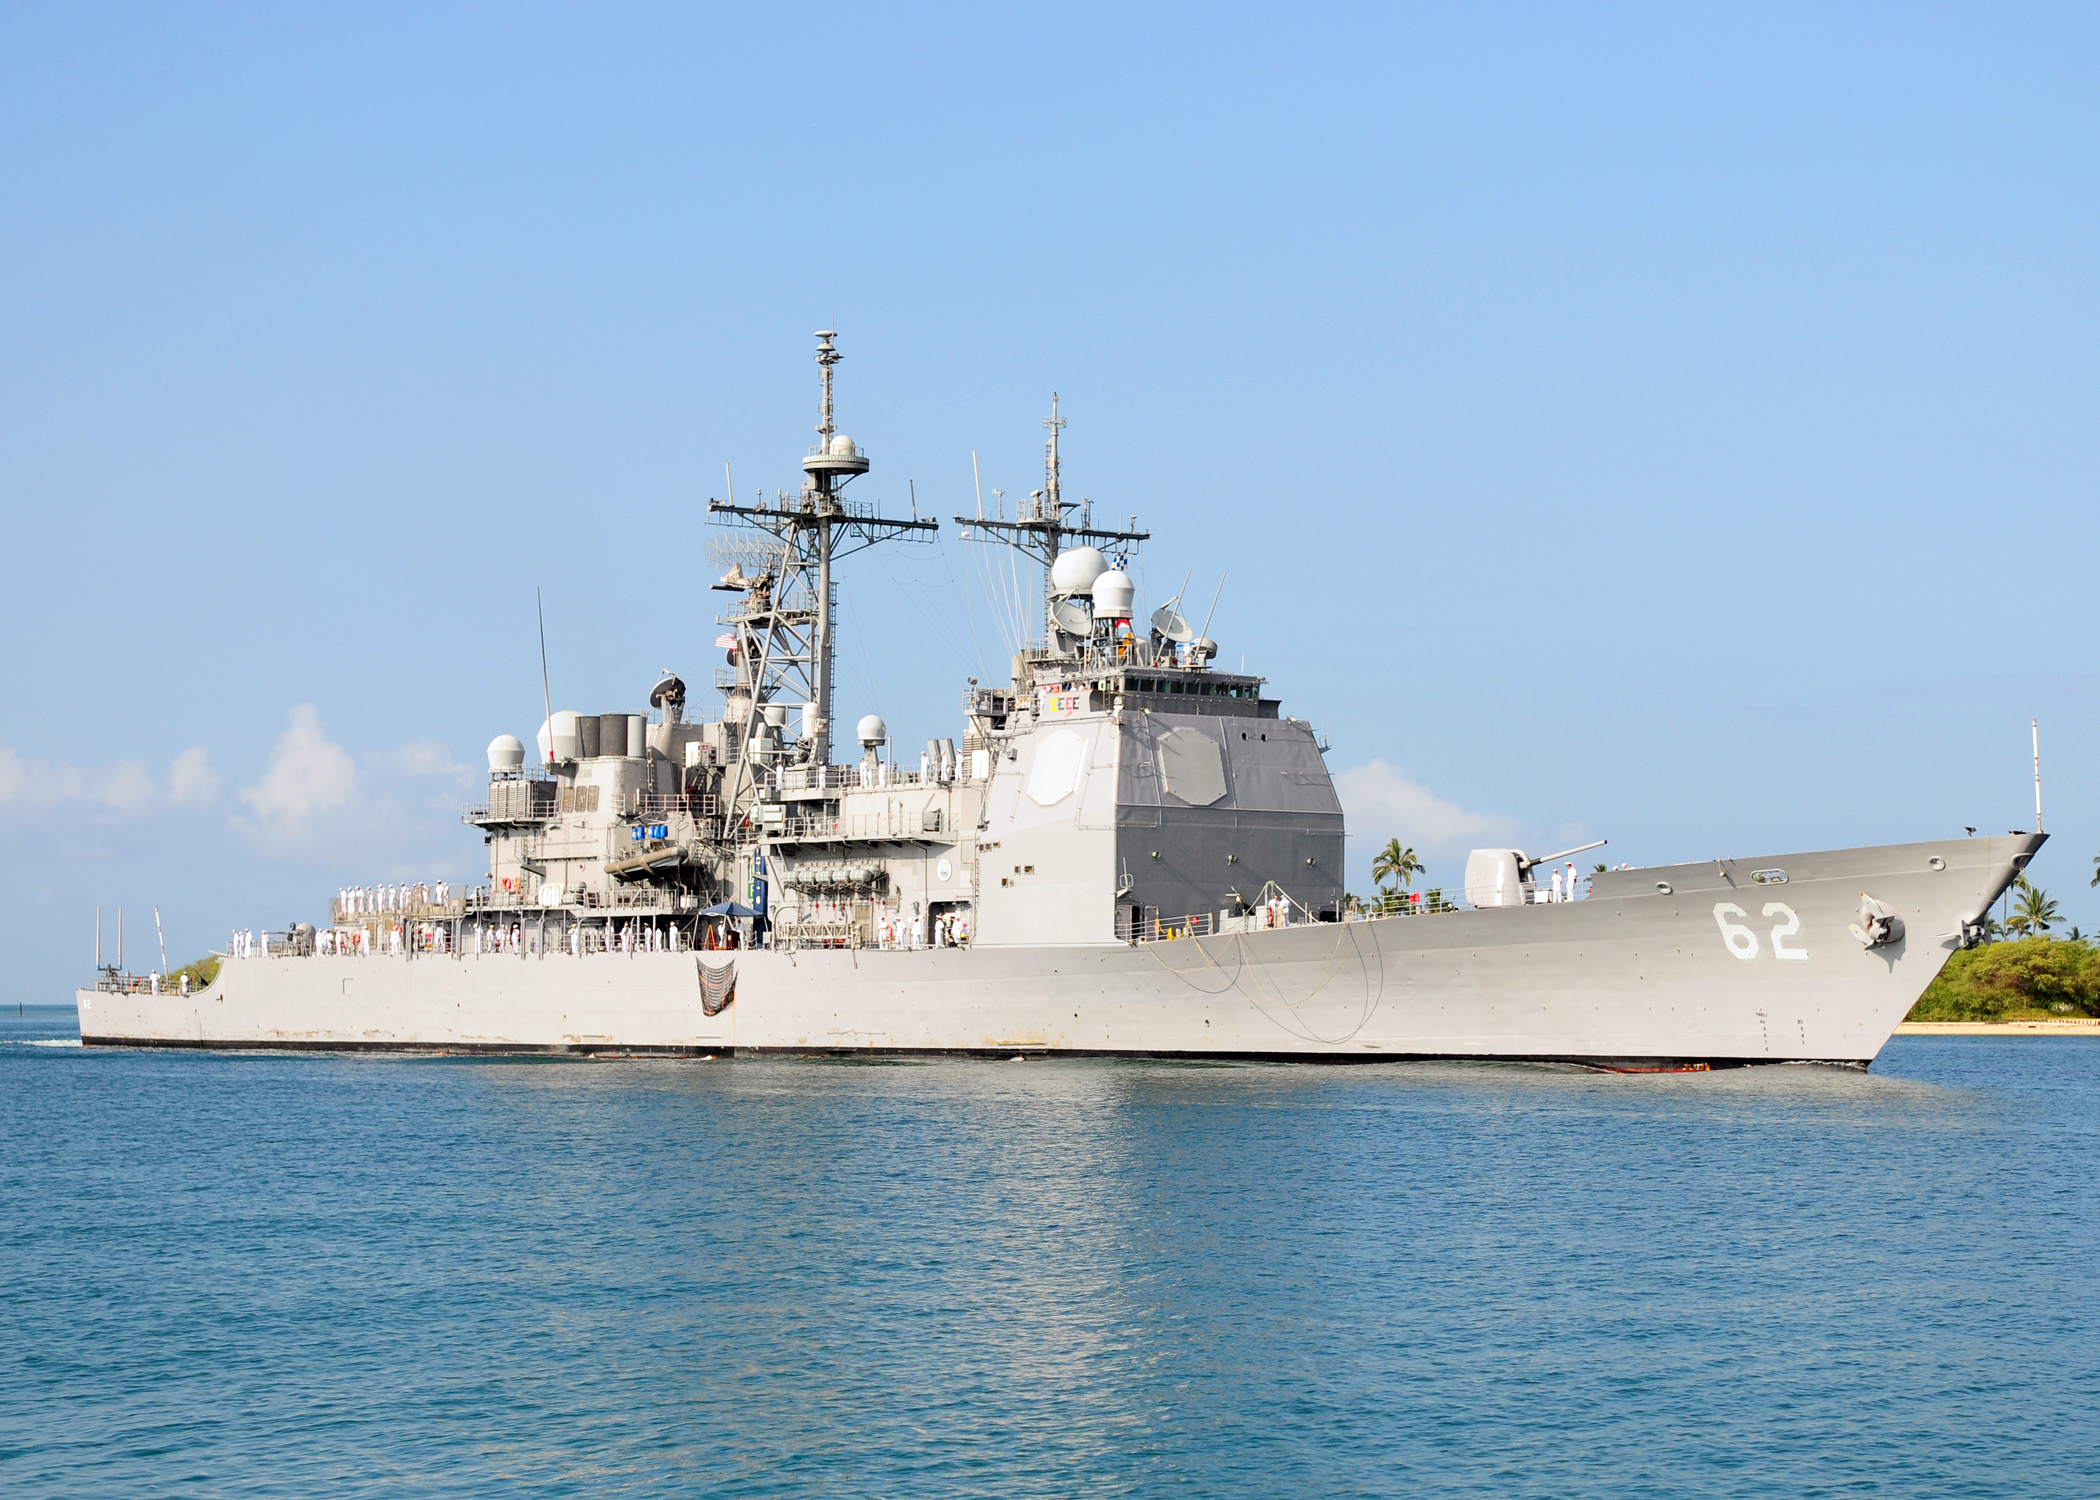 US Navy : USS Chancellorsville Guided Missile Cruiser (CG 62)